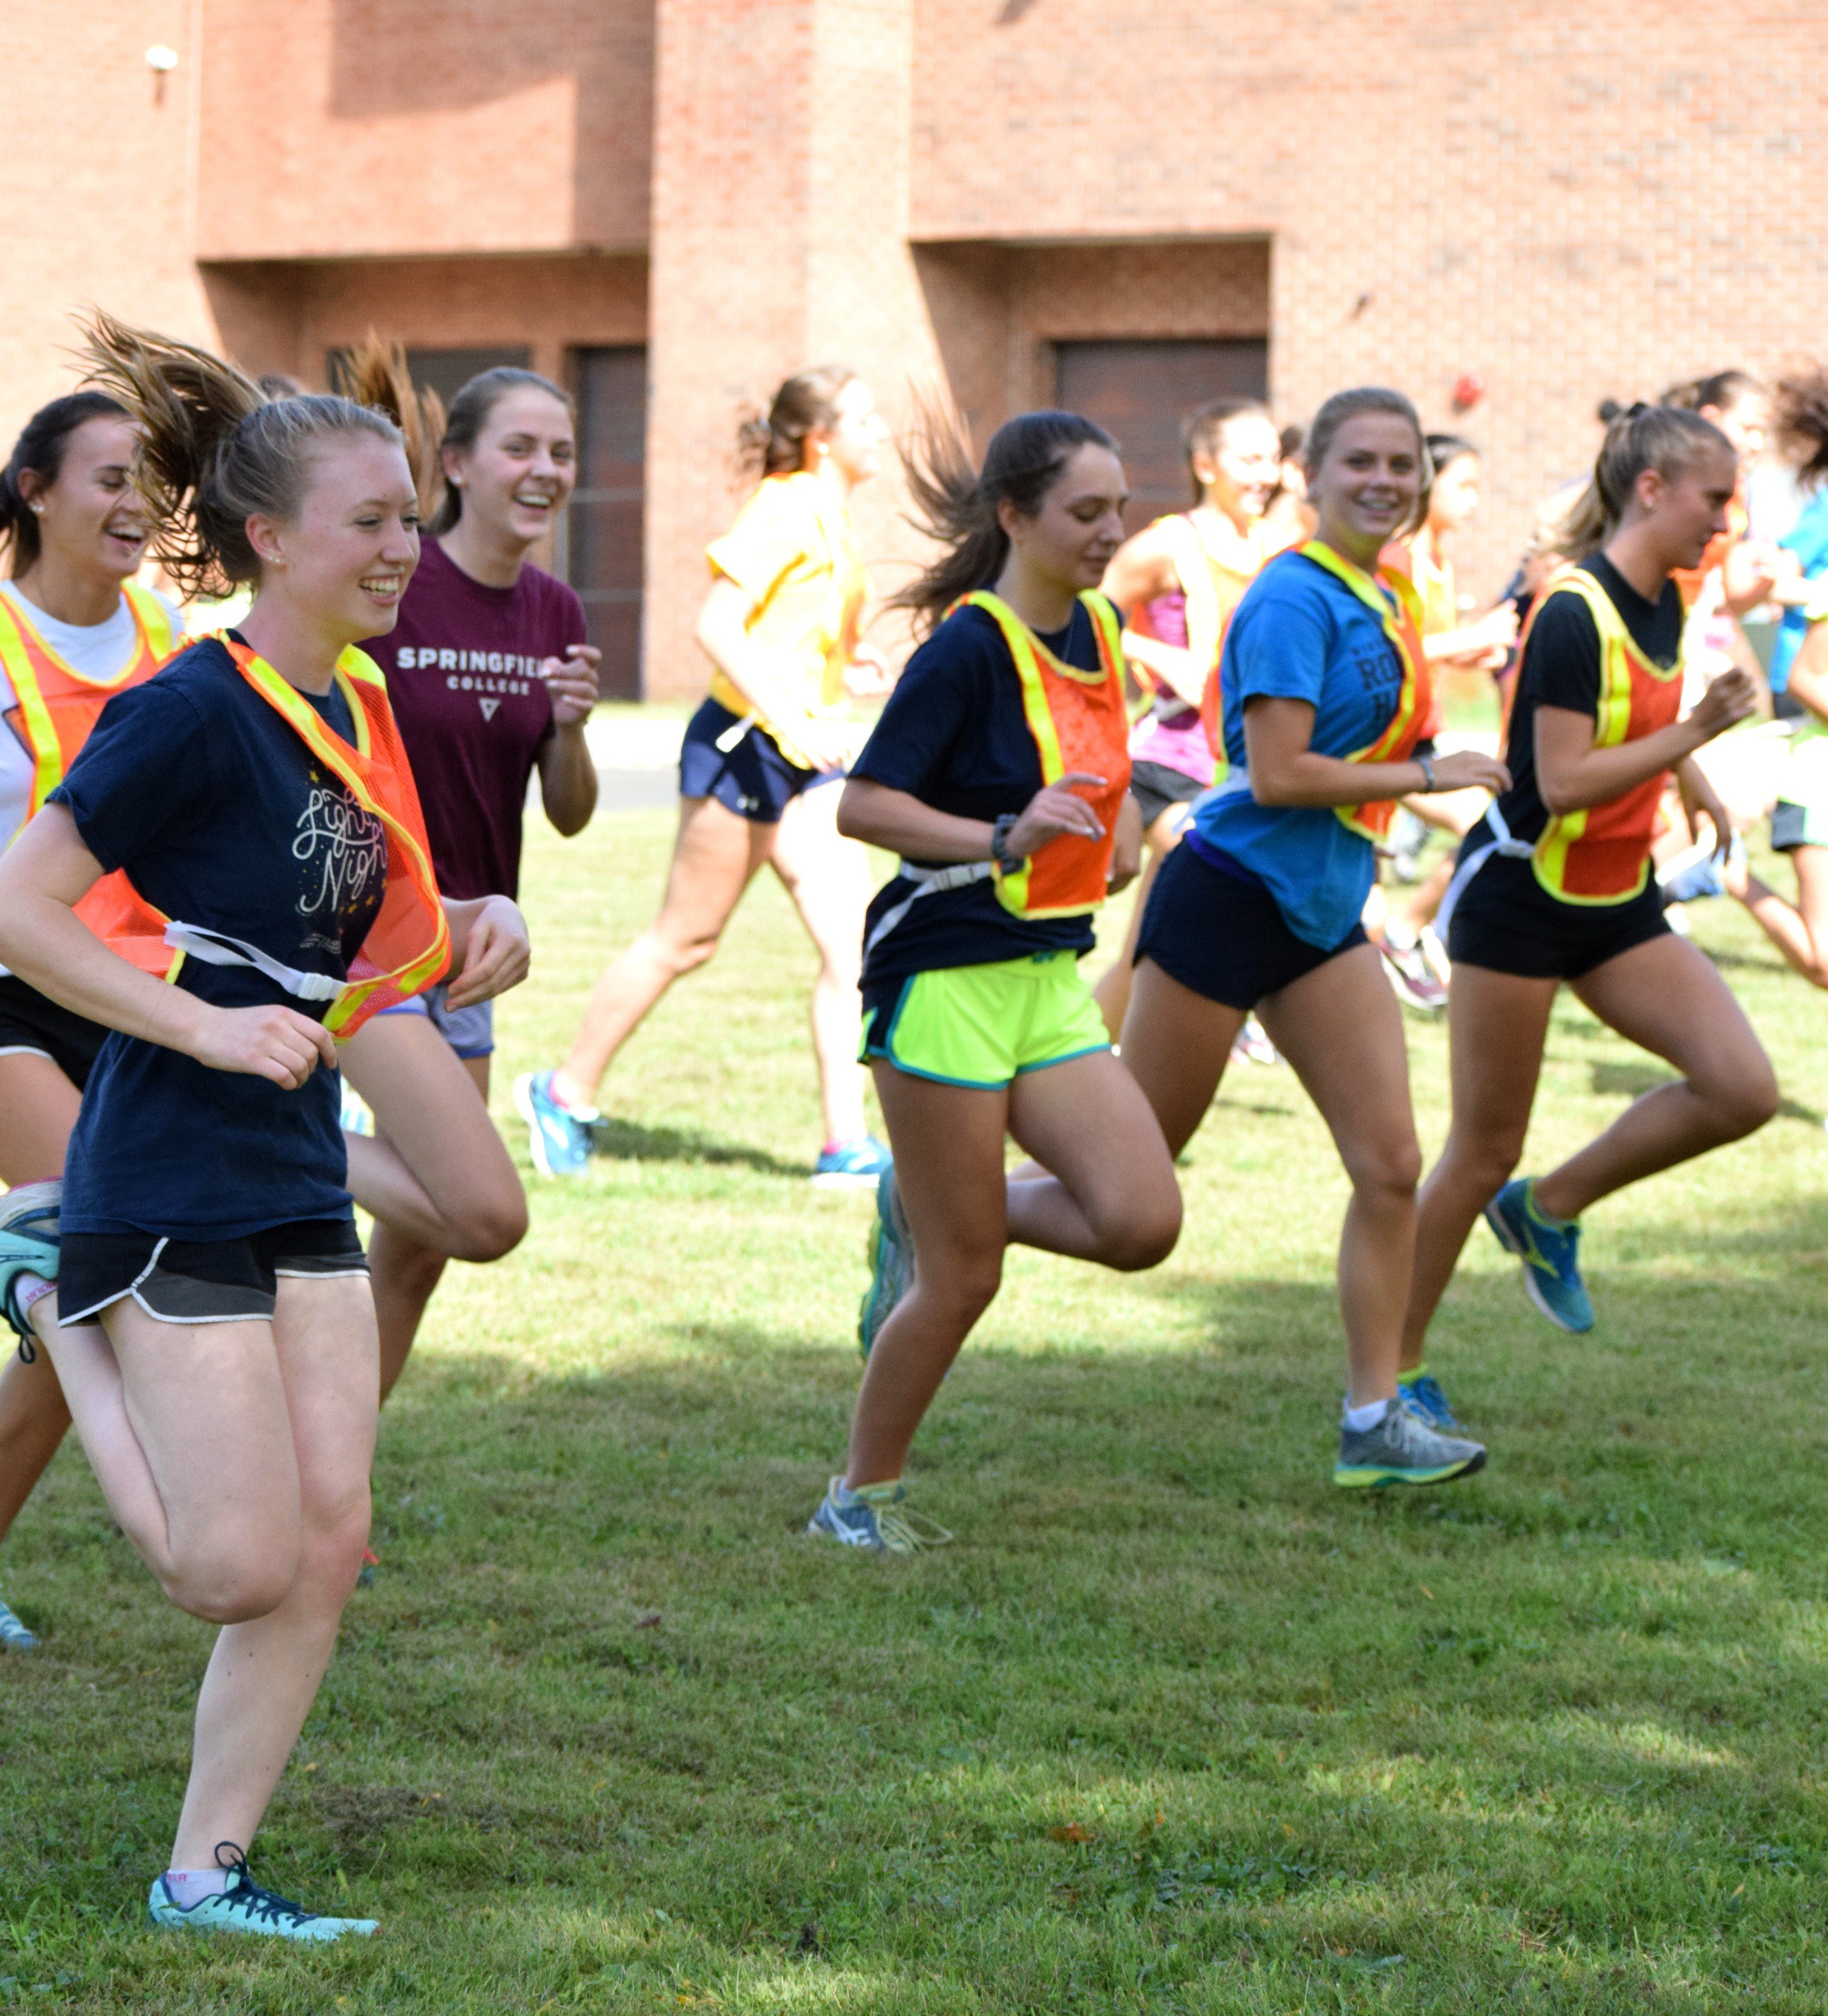 sports2frunning-into-a-new-school-year2fabby-licata.jpg